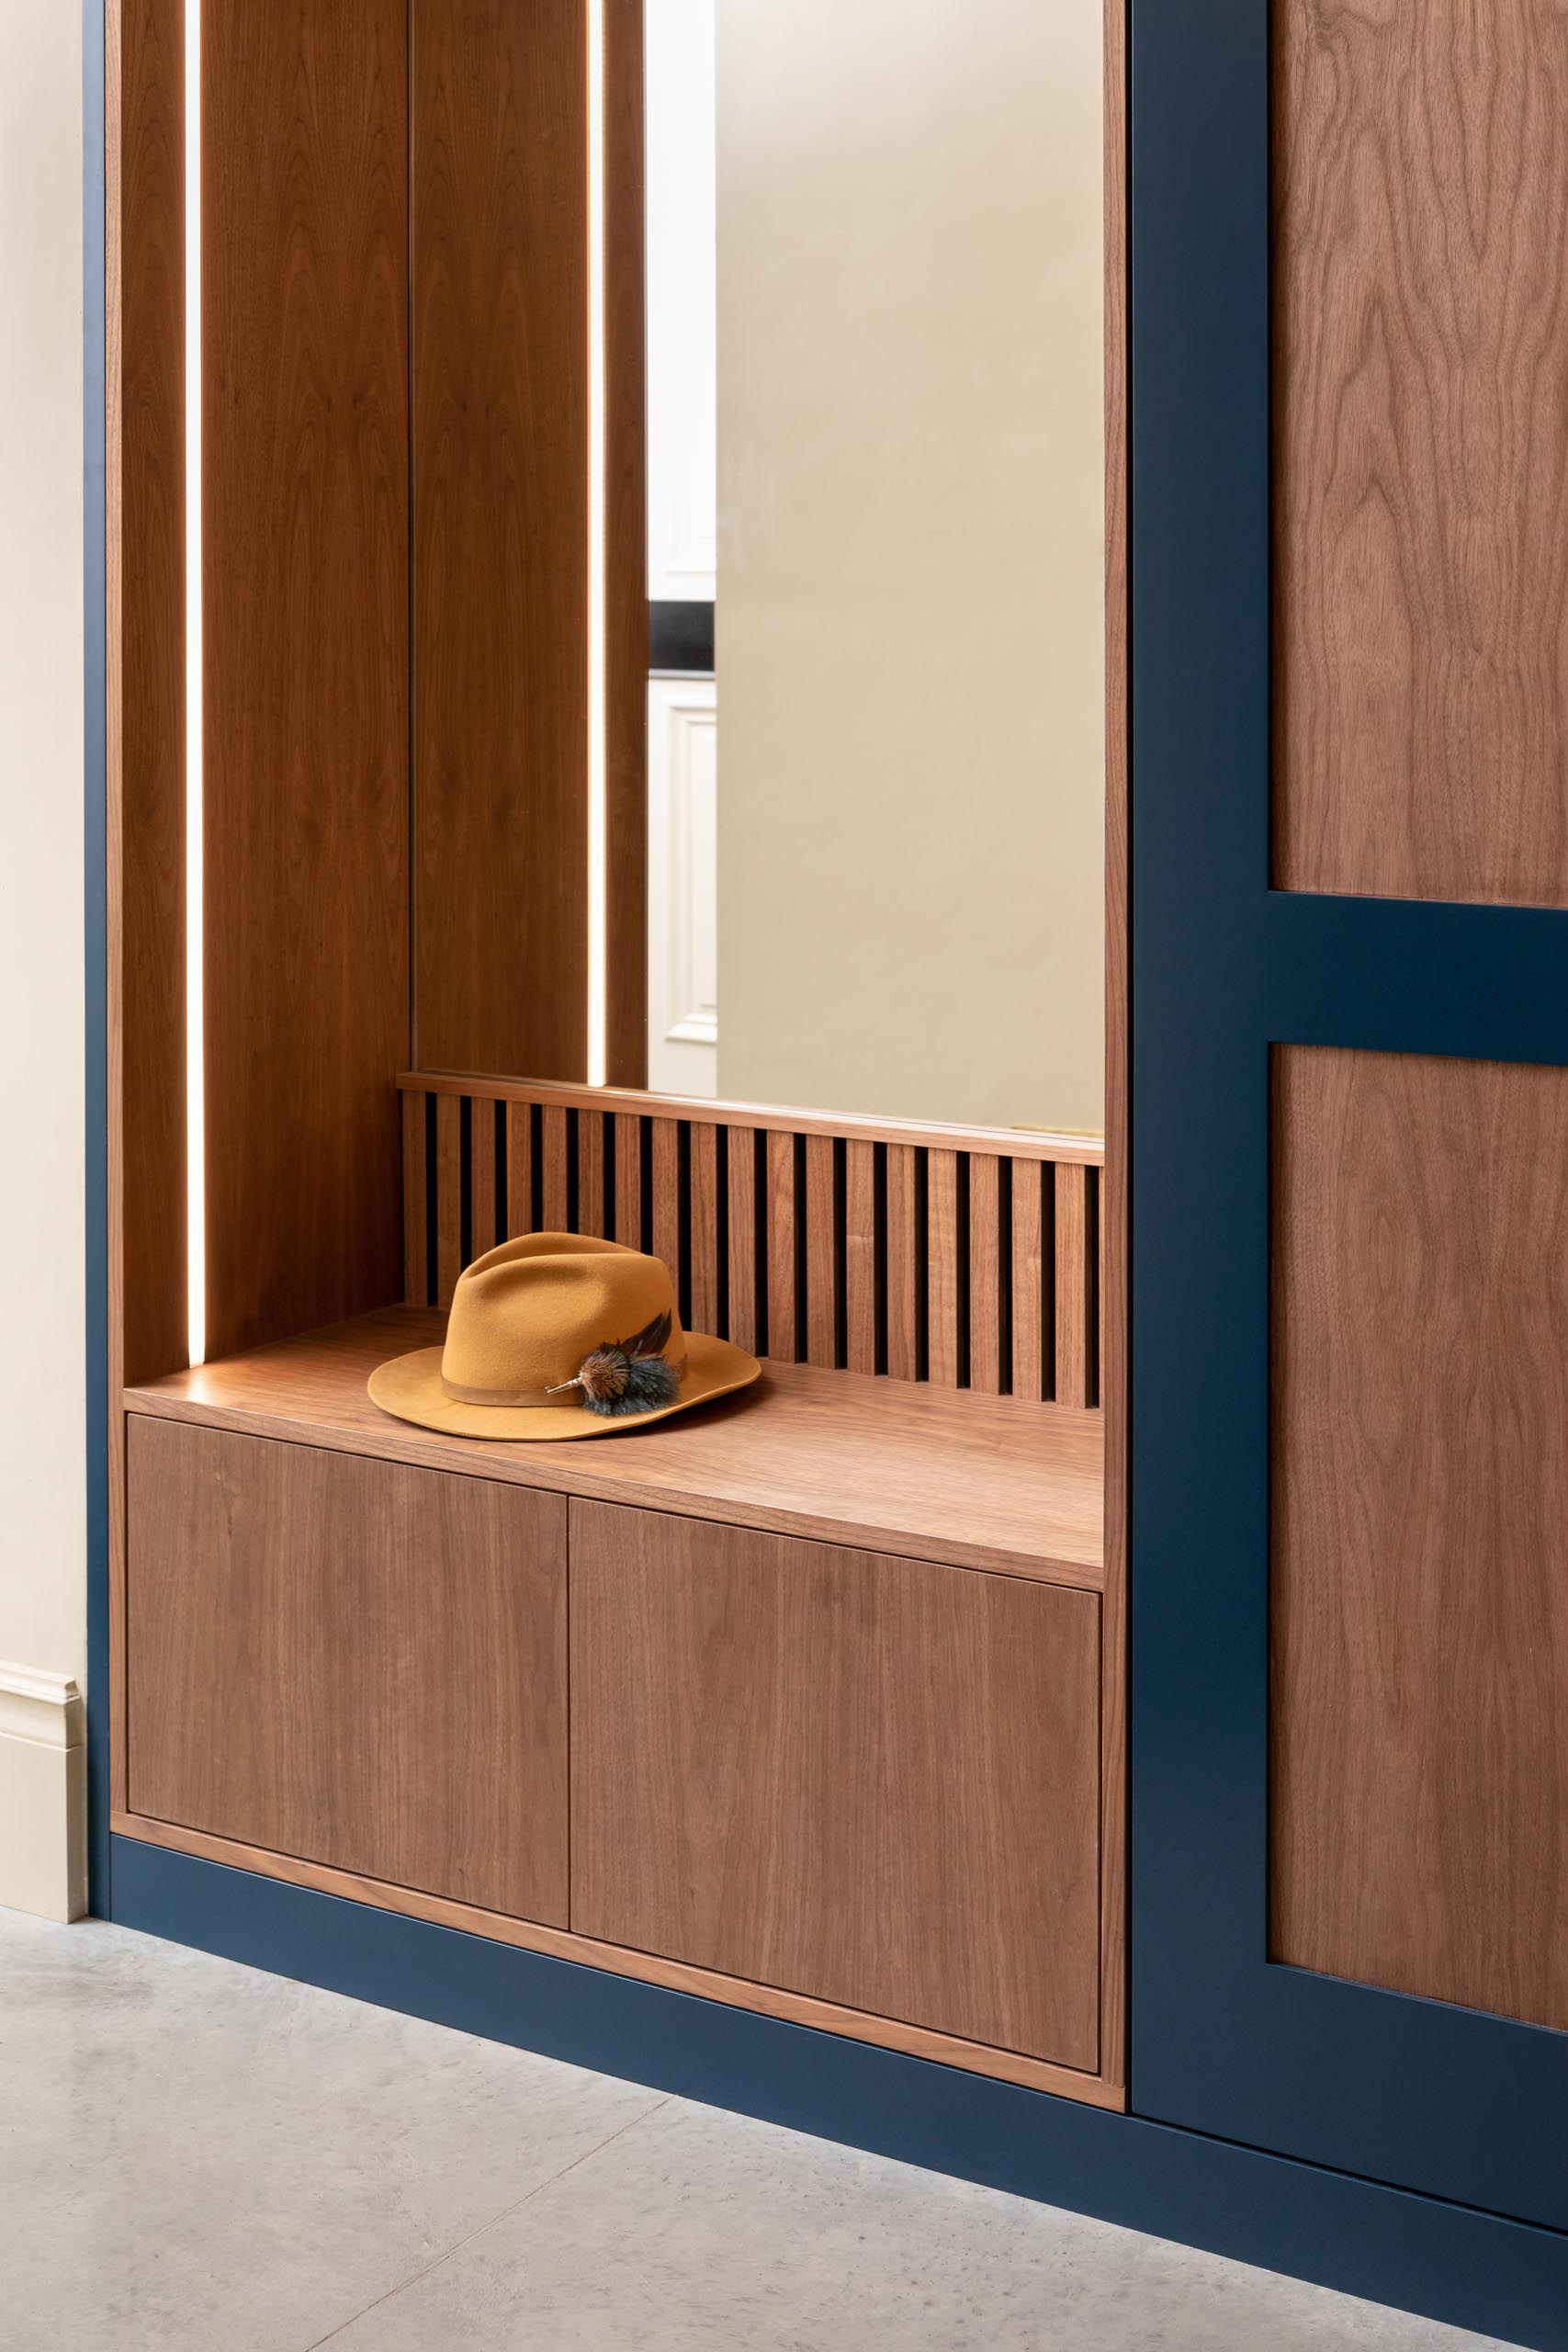 A modern custom designed entryway bench with a mirror, storage, and integrated LED lighting.